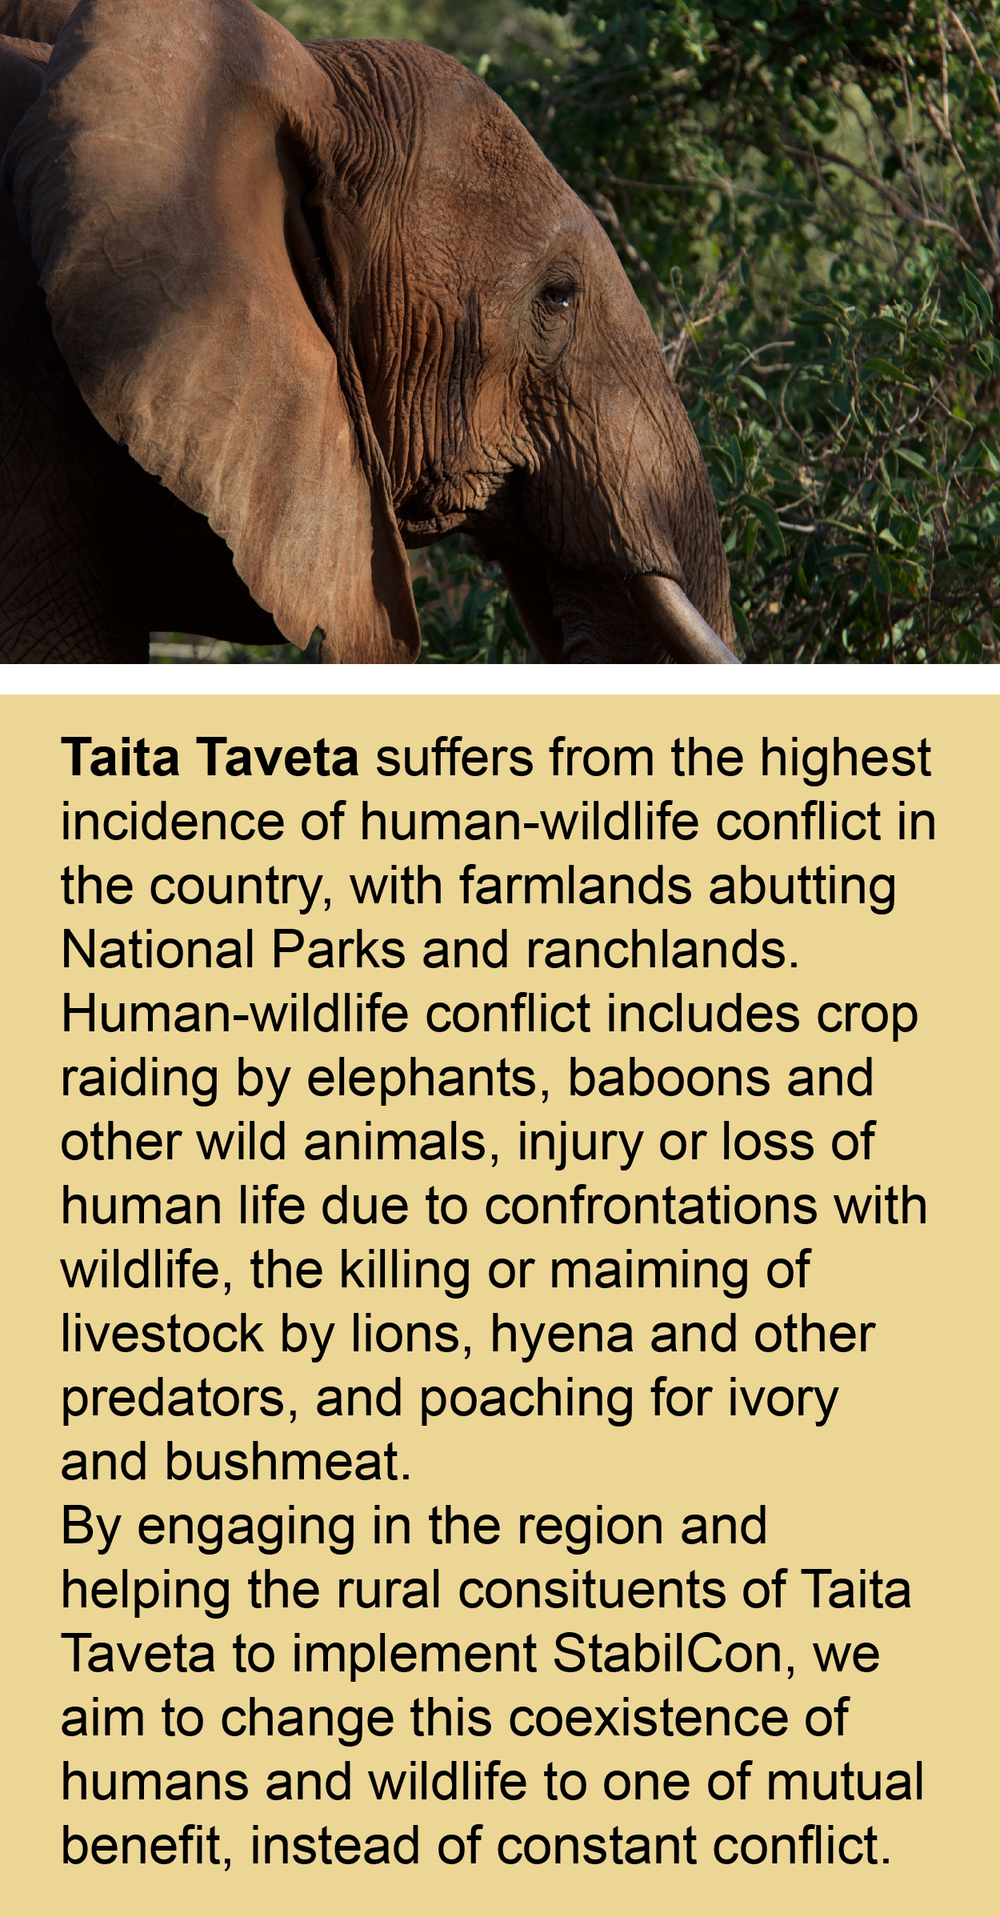 taita taveta environmental coordination initiative